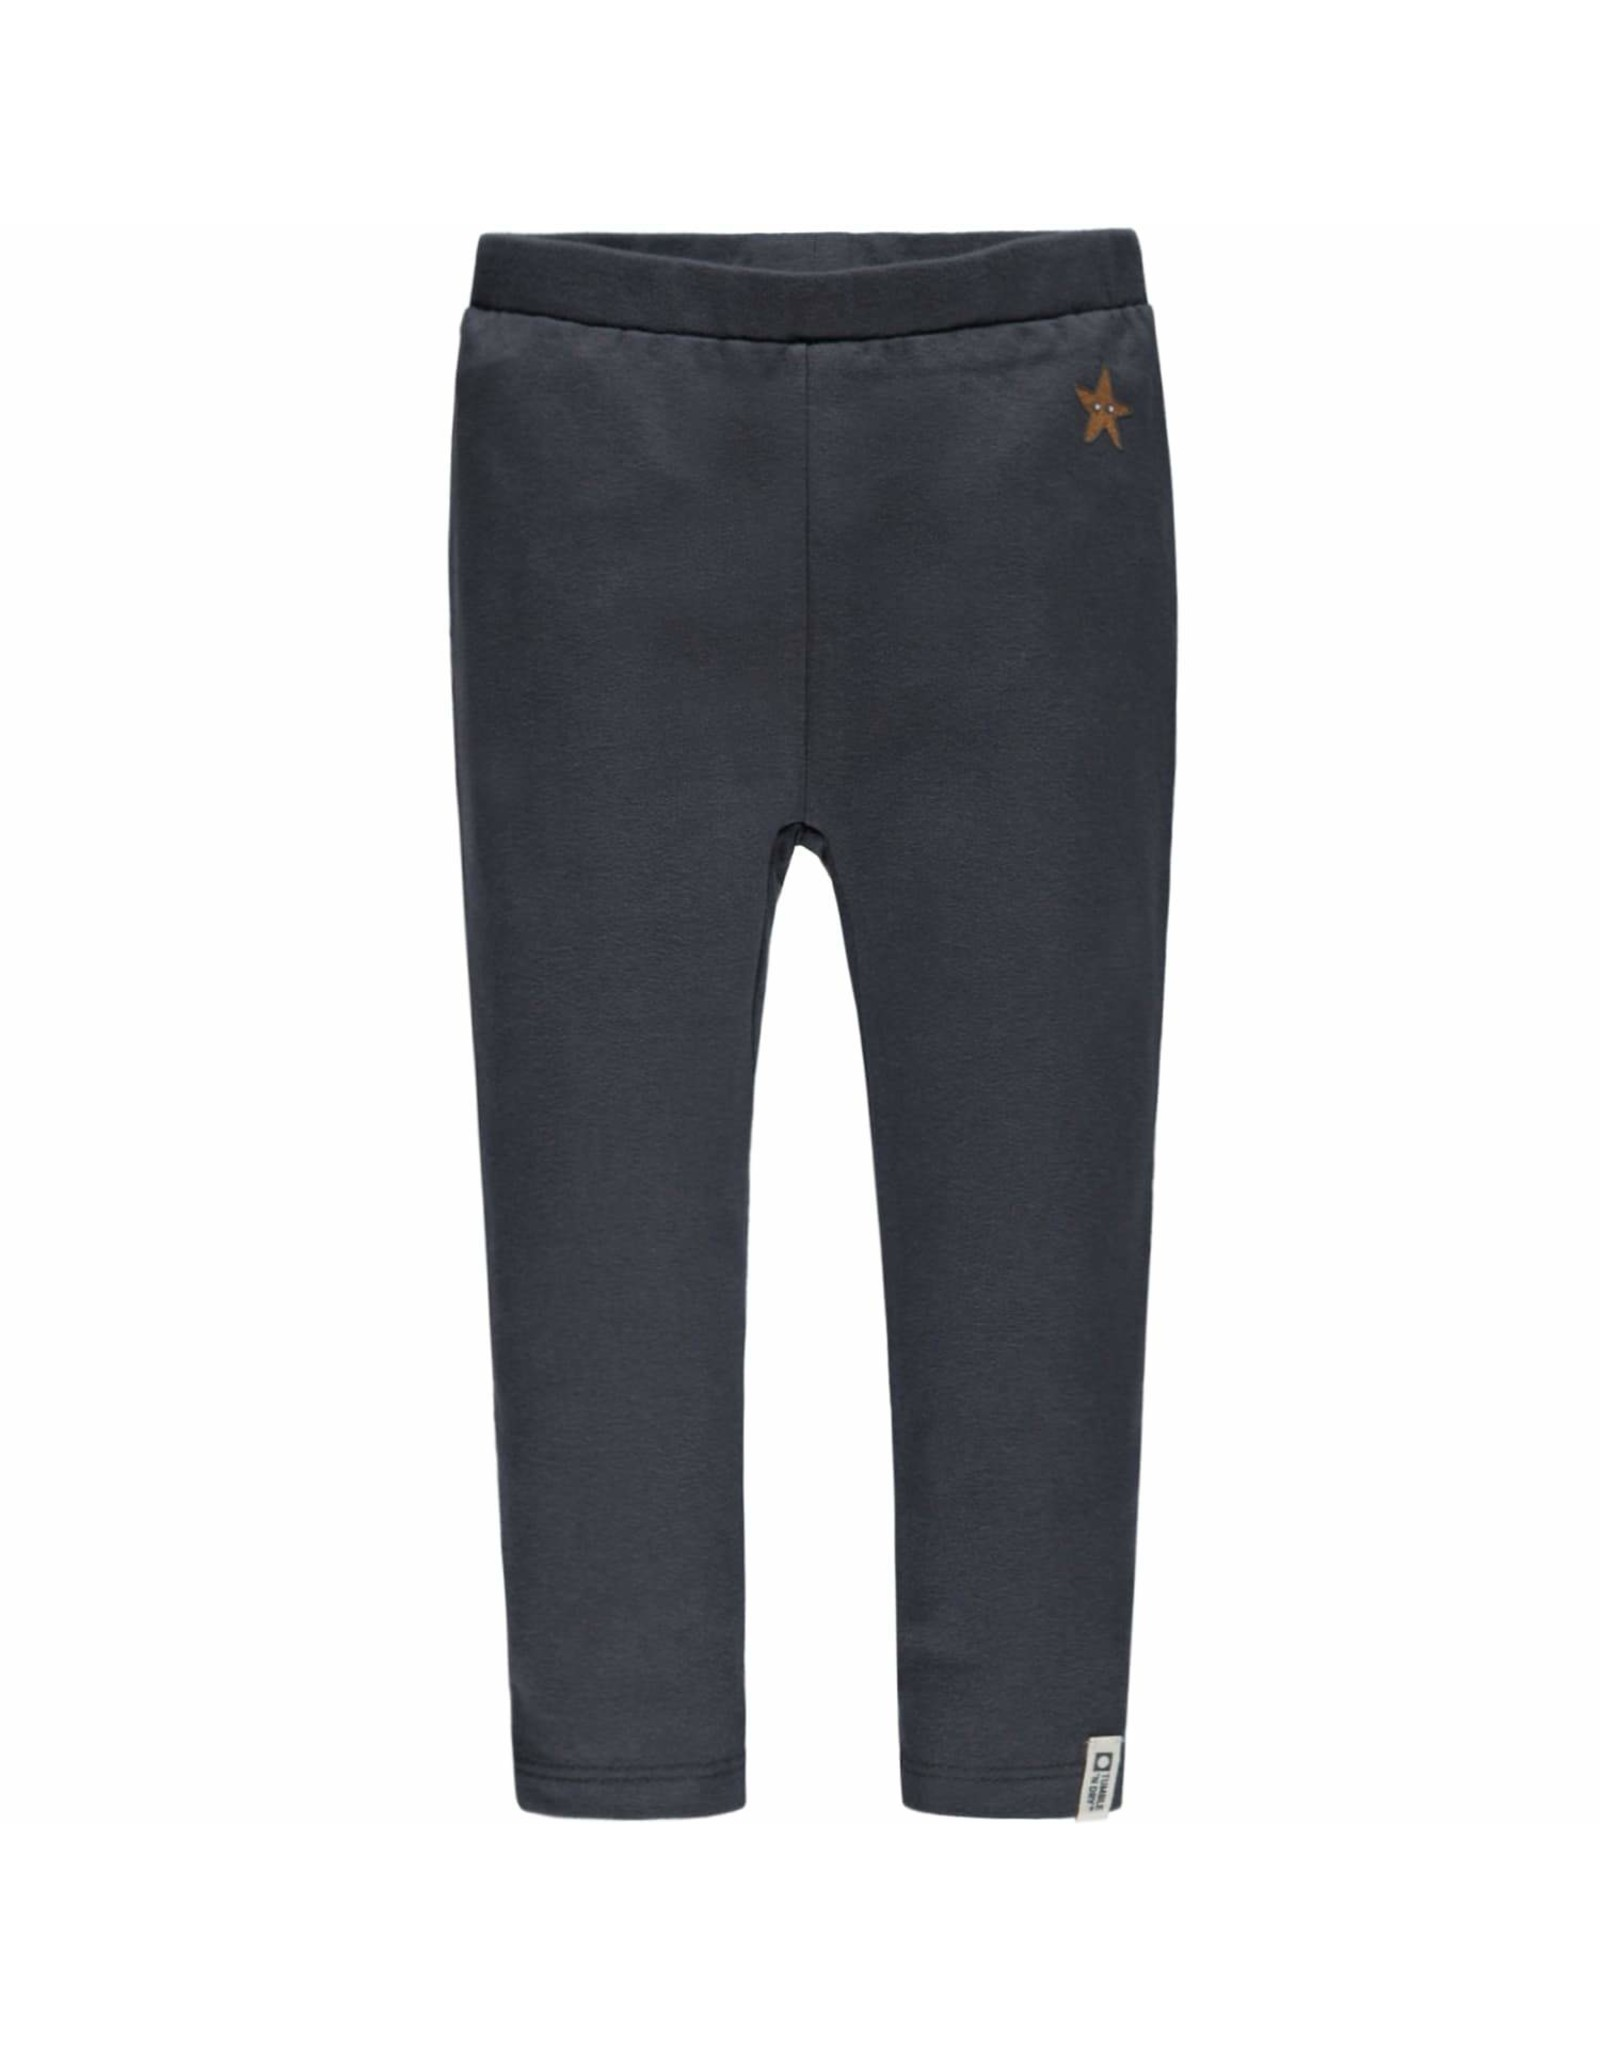 Tumble 'n Dry Girs legging Jarieke Color: grey dark